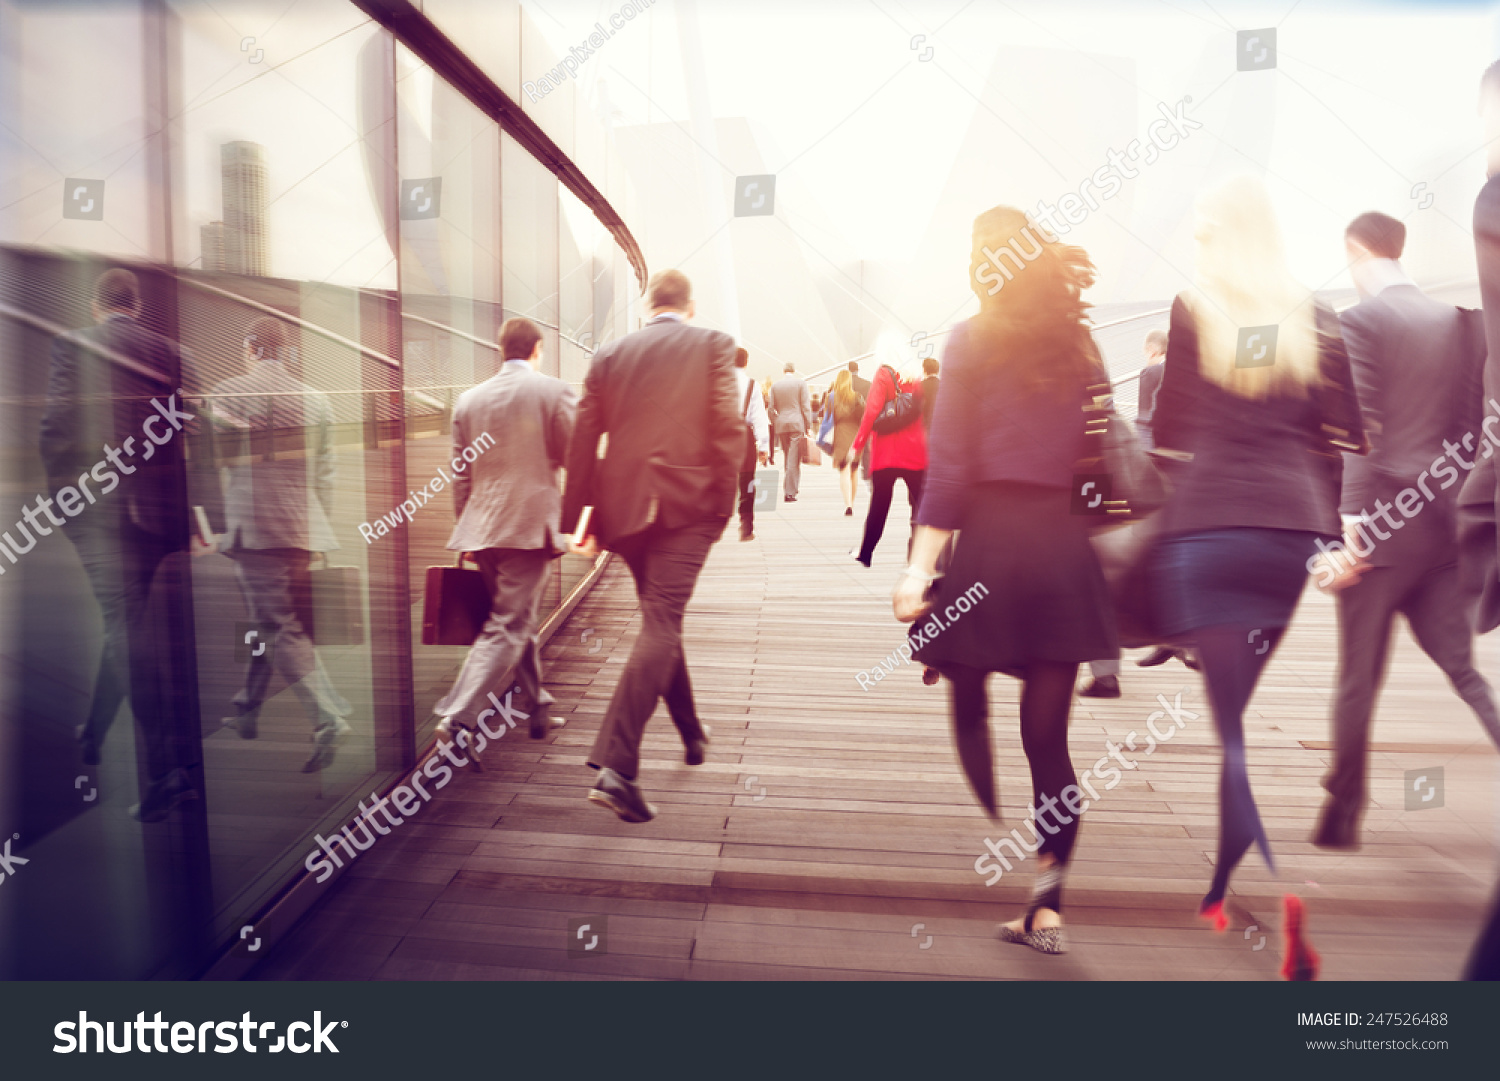 People Commuter Walking Rush Hour Cityscape Concept #247526488